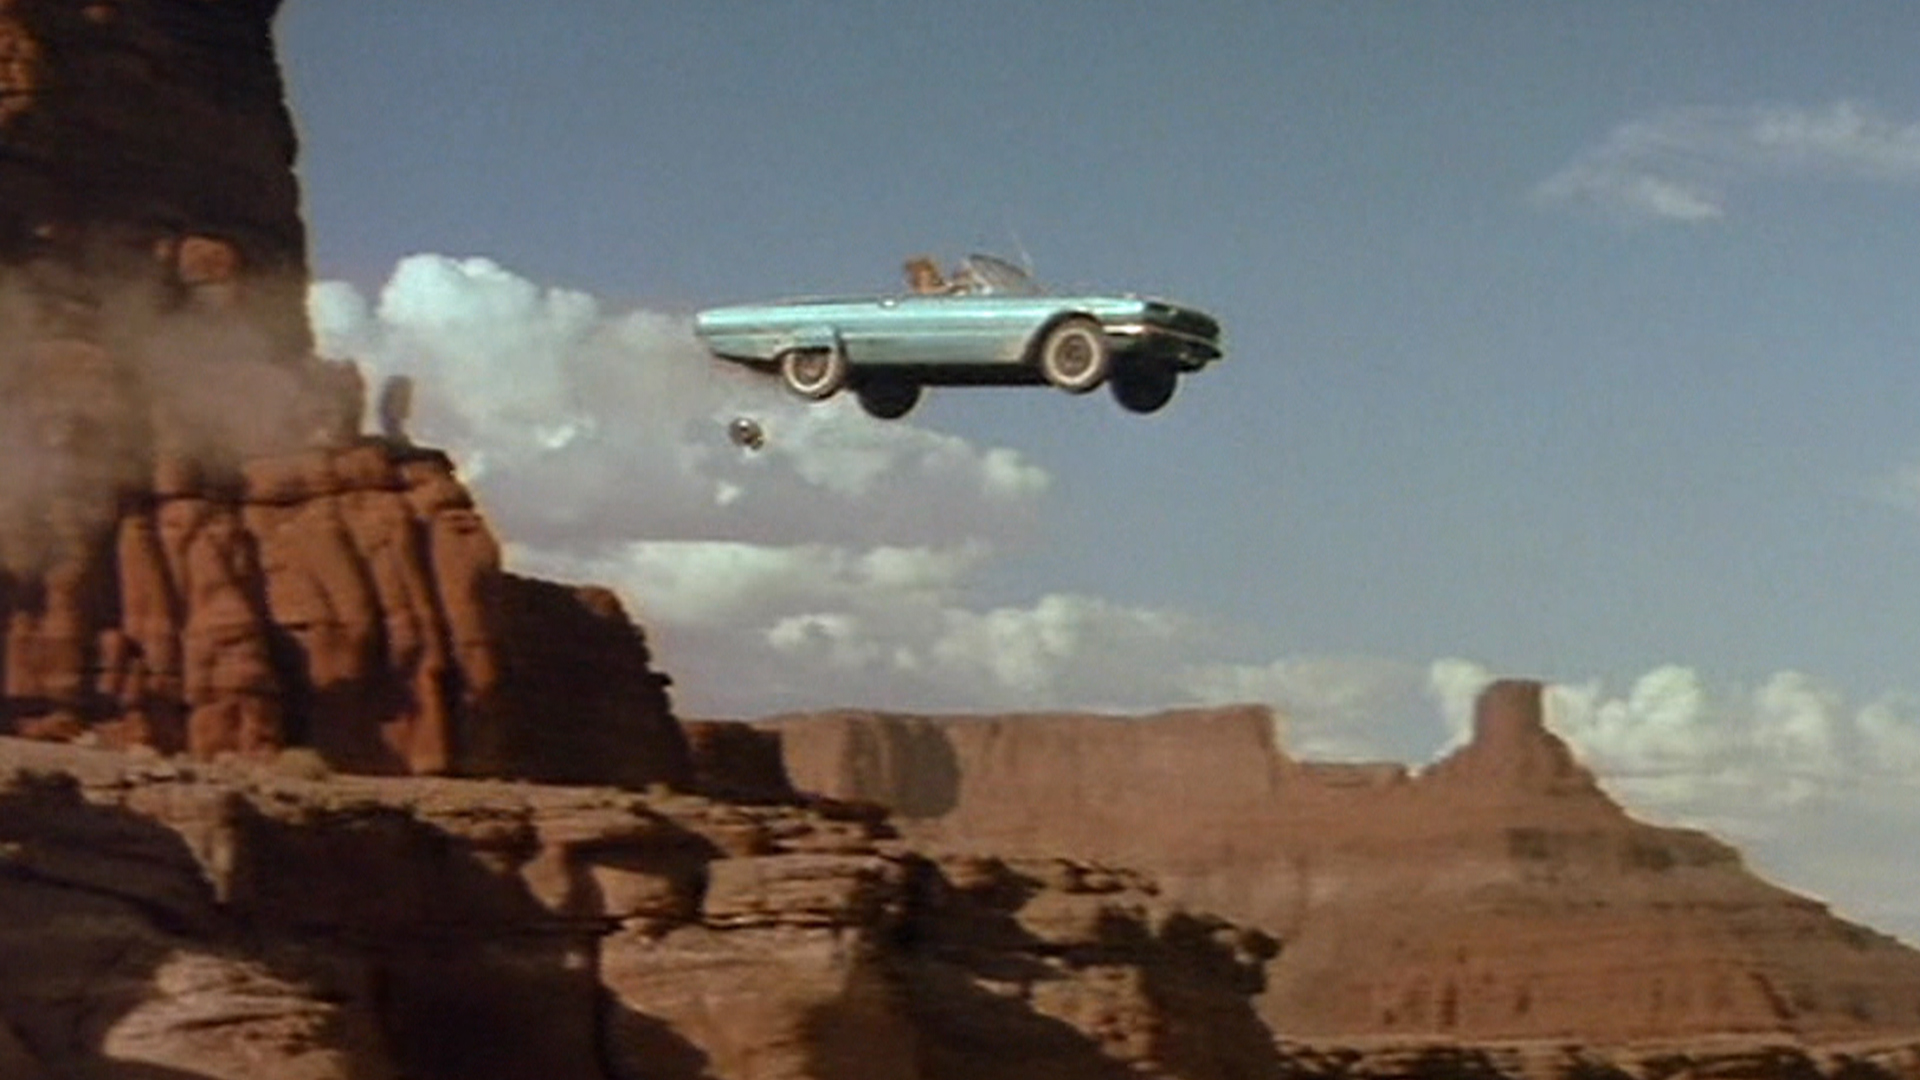 an analysis of the political status and social implications in thelma and louise a 1991 film